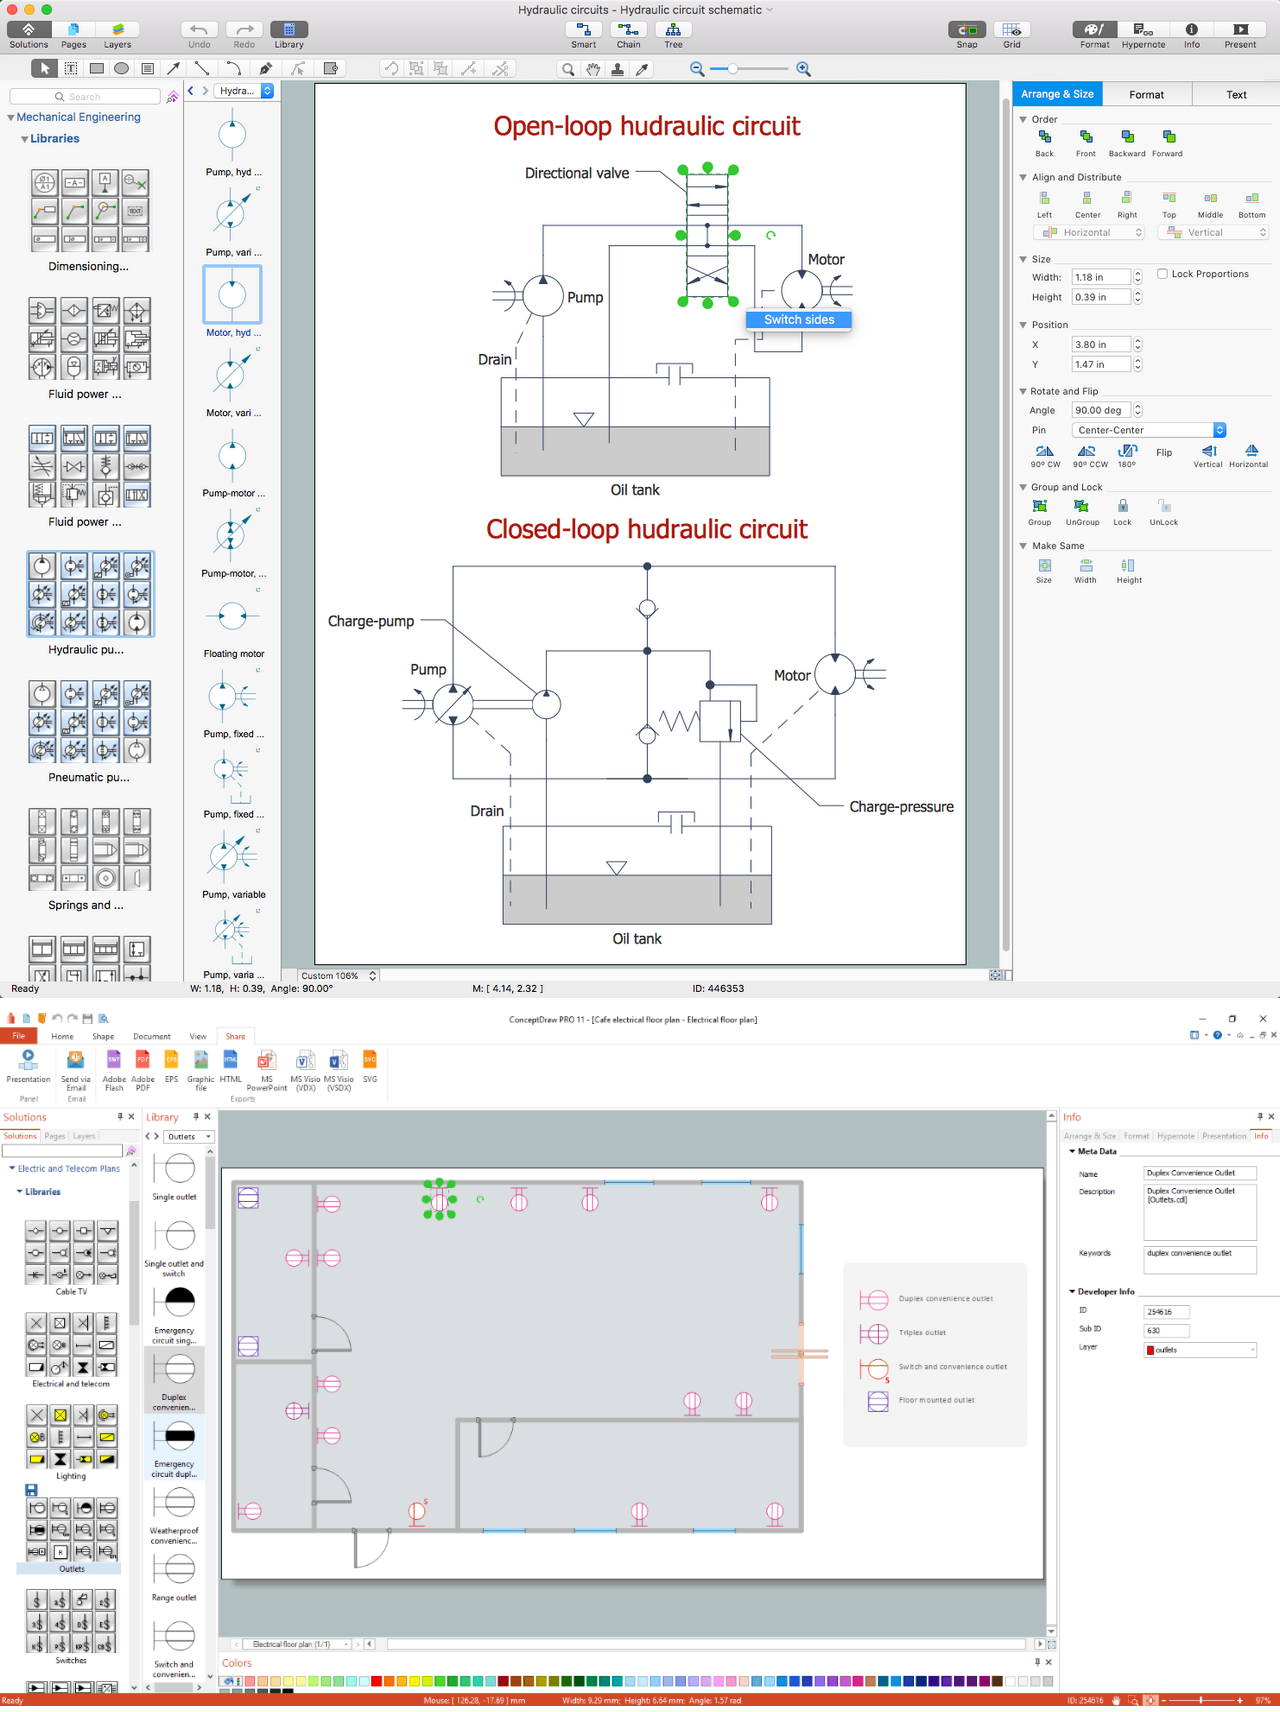 cad drawing software for making mechanic diagram and electrical rh conceptdraw com Microsoft Visio Professional 2016 Visio Icon